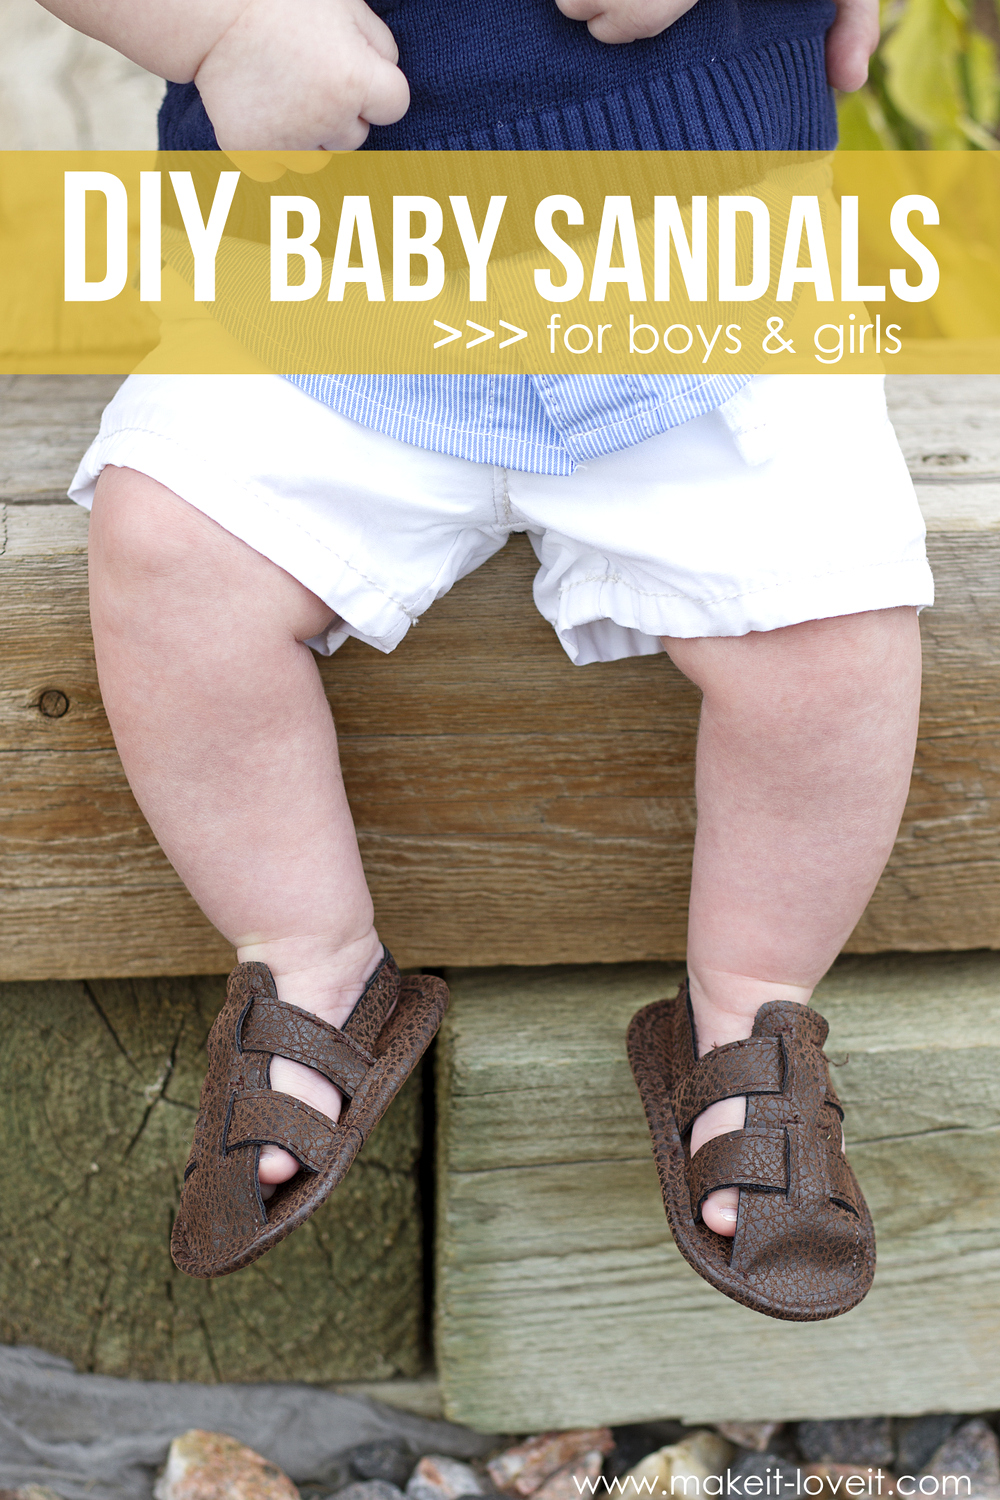 DIY Baby Sandals (for boys & girls)